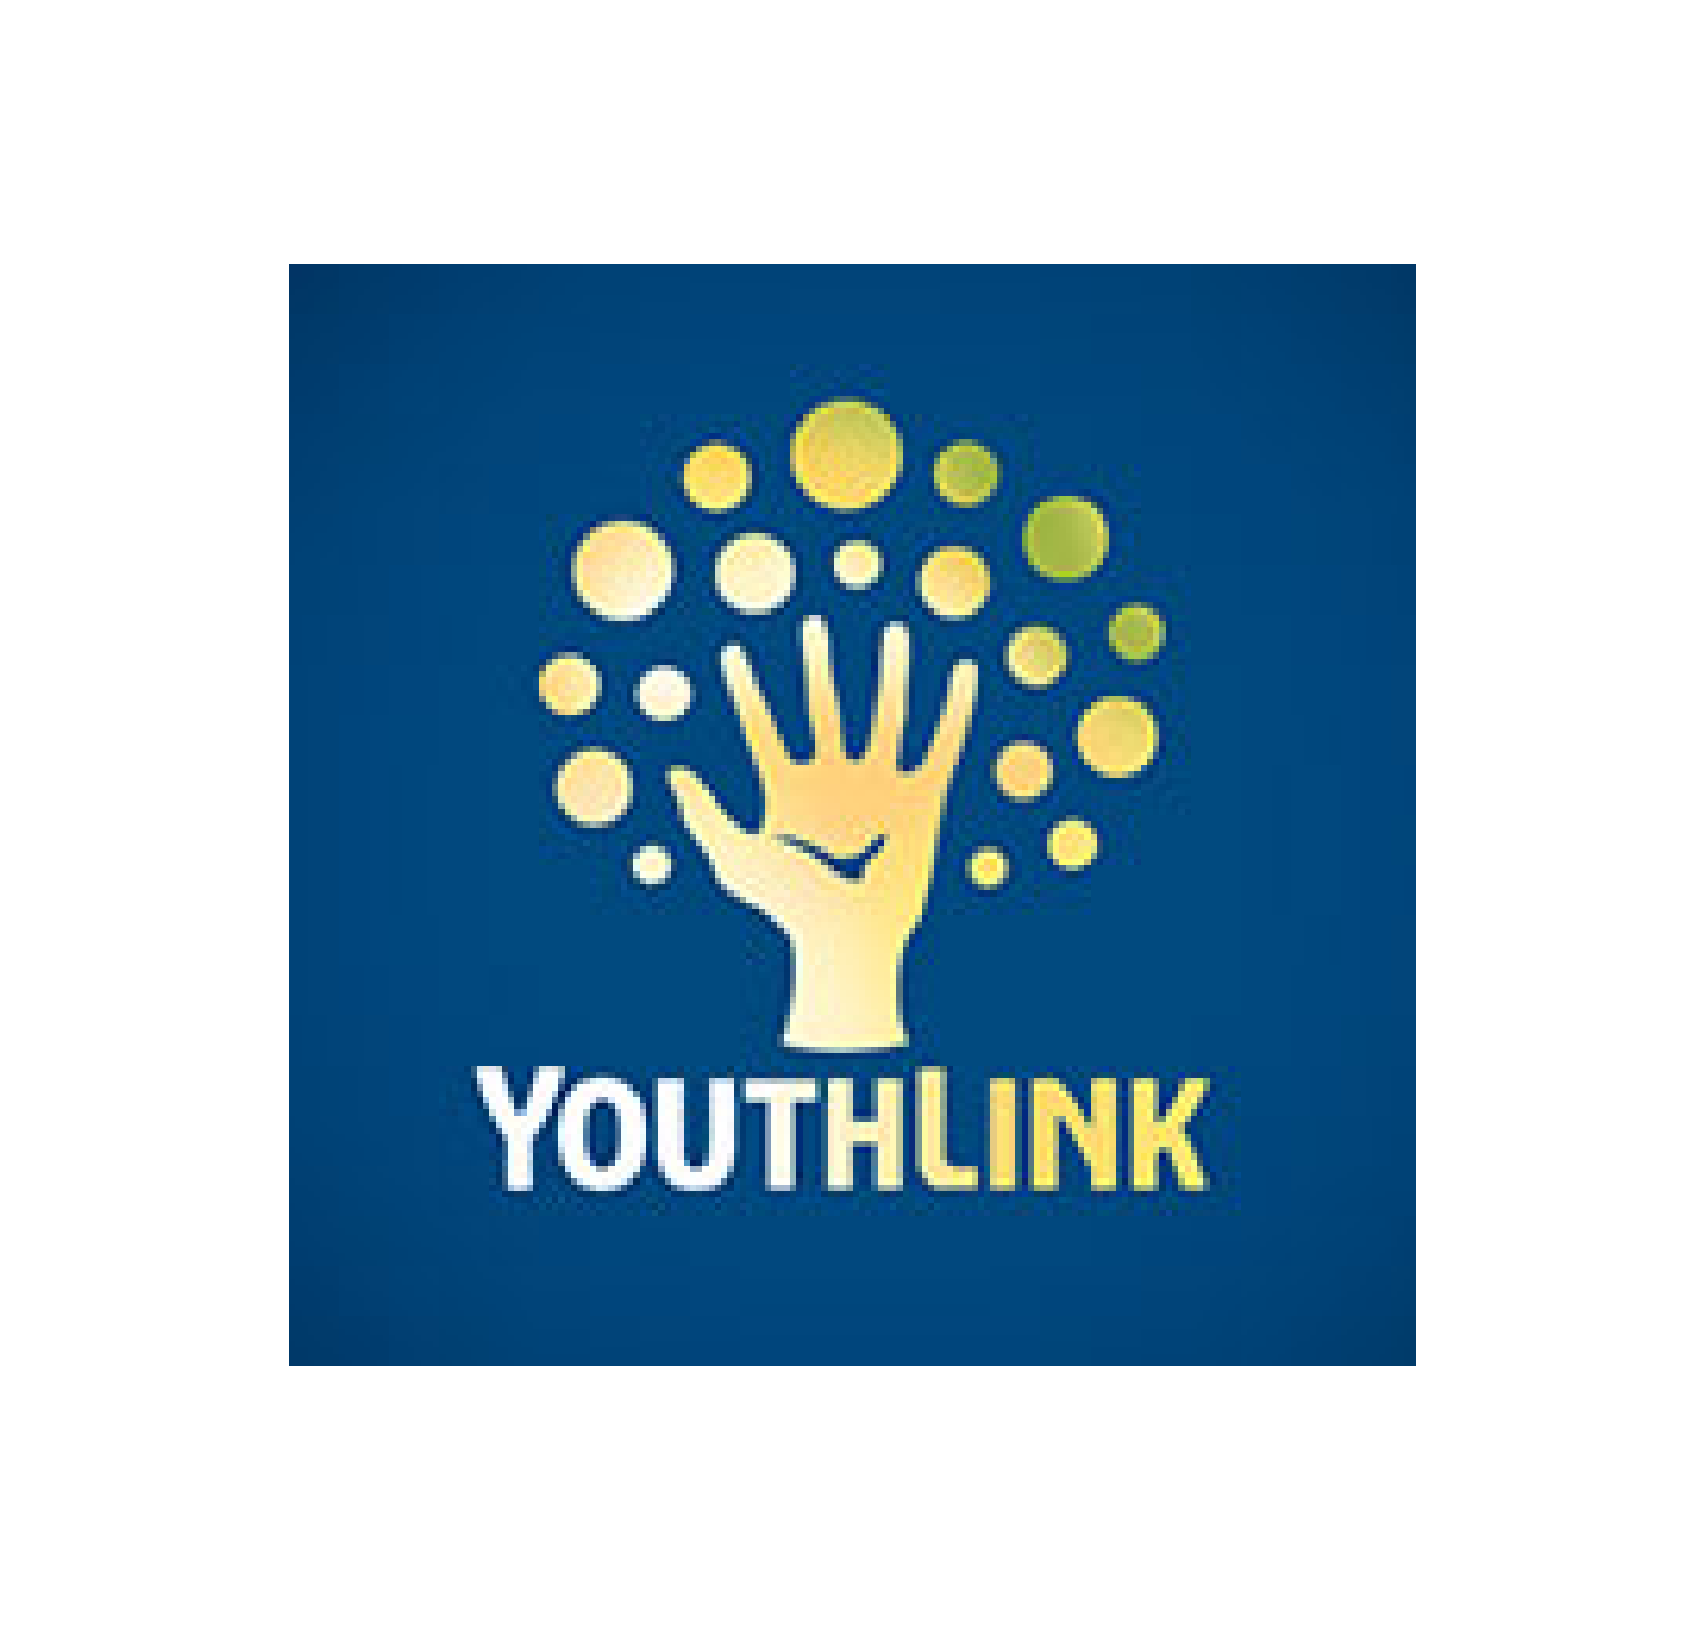 Youth Link - At YouthLink, our mission is to support and empower young people on their journey to self-reliance.Our vision is a community in which all youth, without regard to their living situation, have an equal opportunity to pursue their goals and dreams, and an equal likelihood of achieving them.